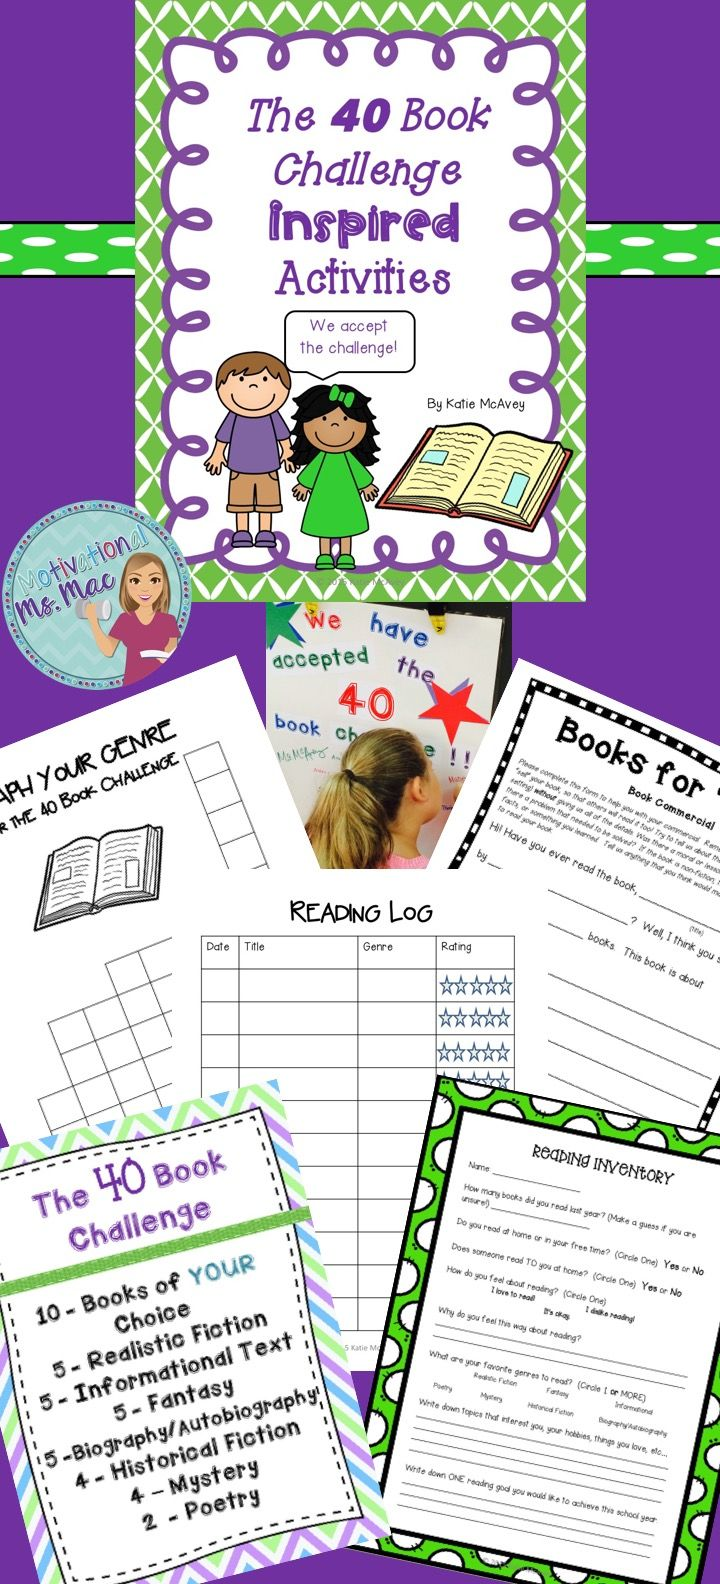 40 Book challenge inspired activities....Reading inventory, book commercial, reading log, graphing books, and words for classroom acceptance sign.